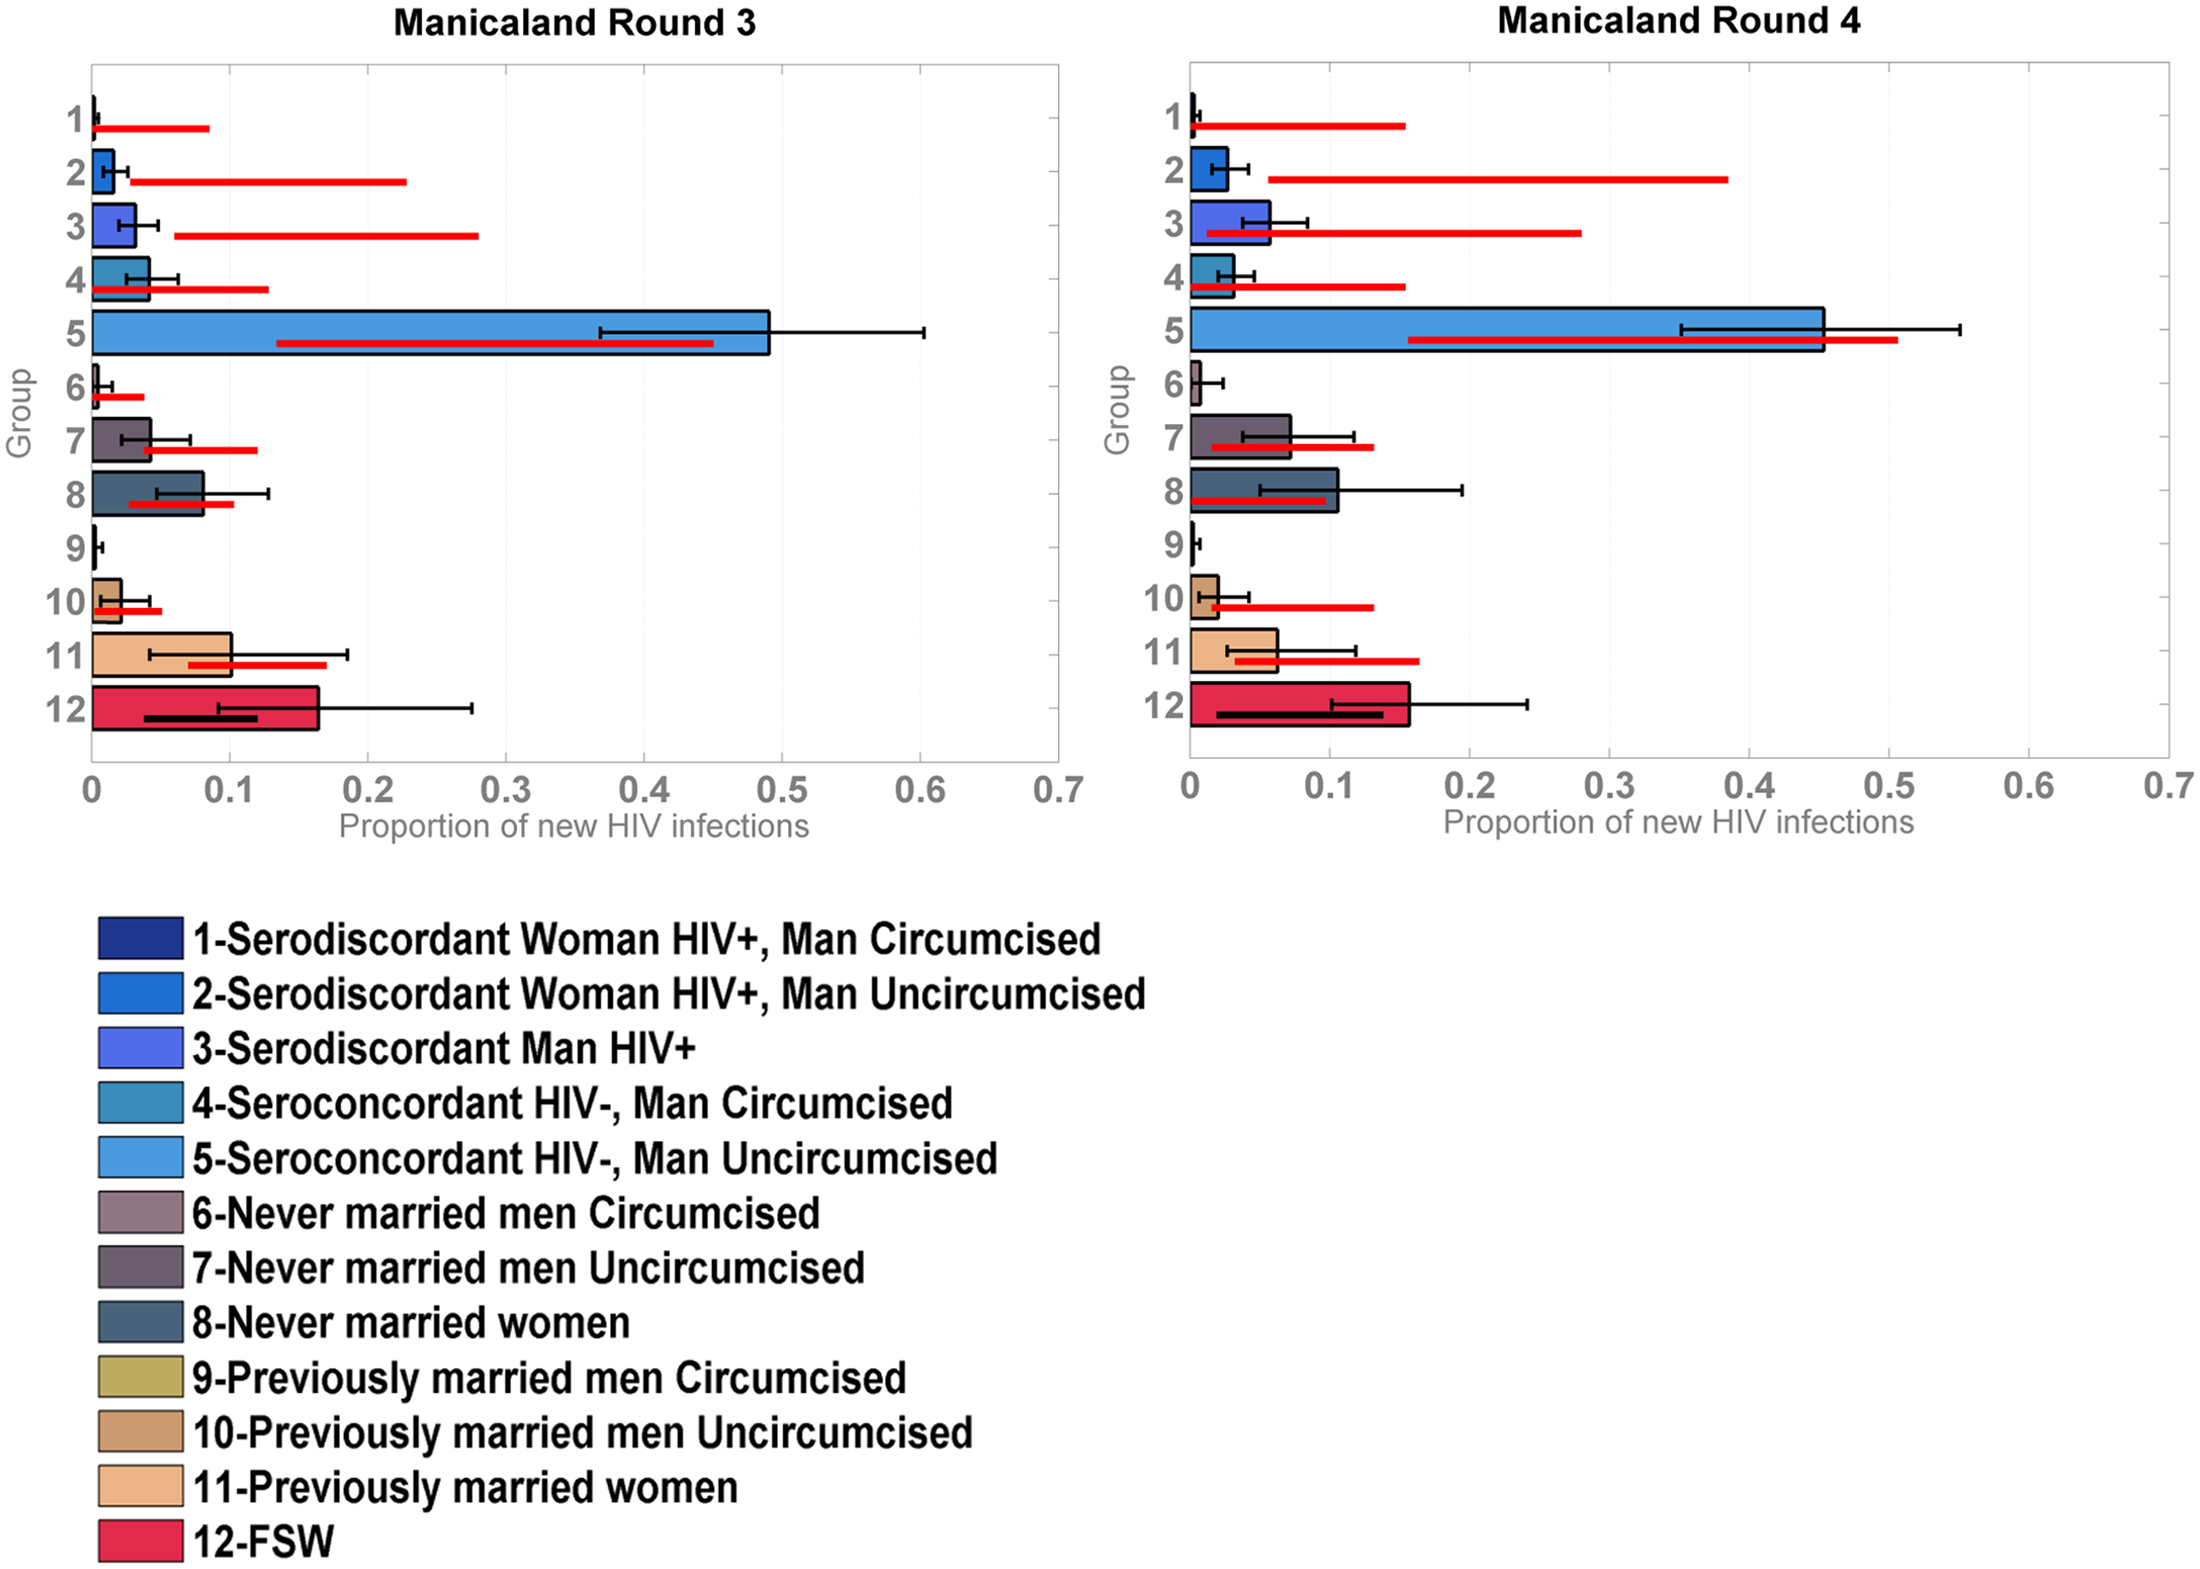 Incidence Patterns Model validation on cohort data from the Manicaland study disaggregated for sex work.